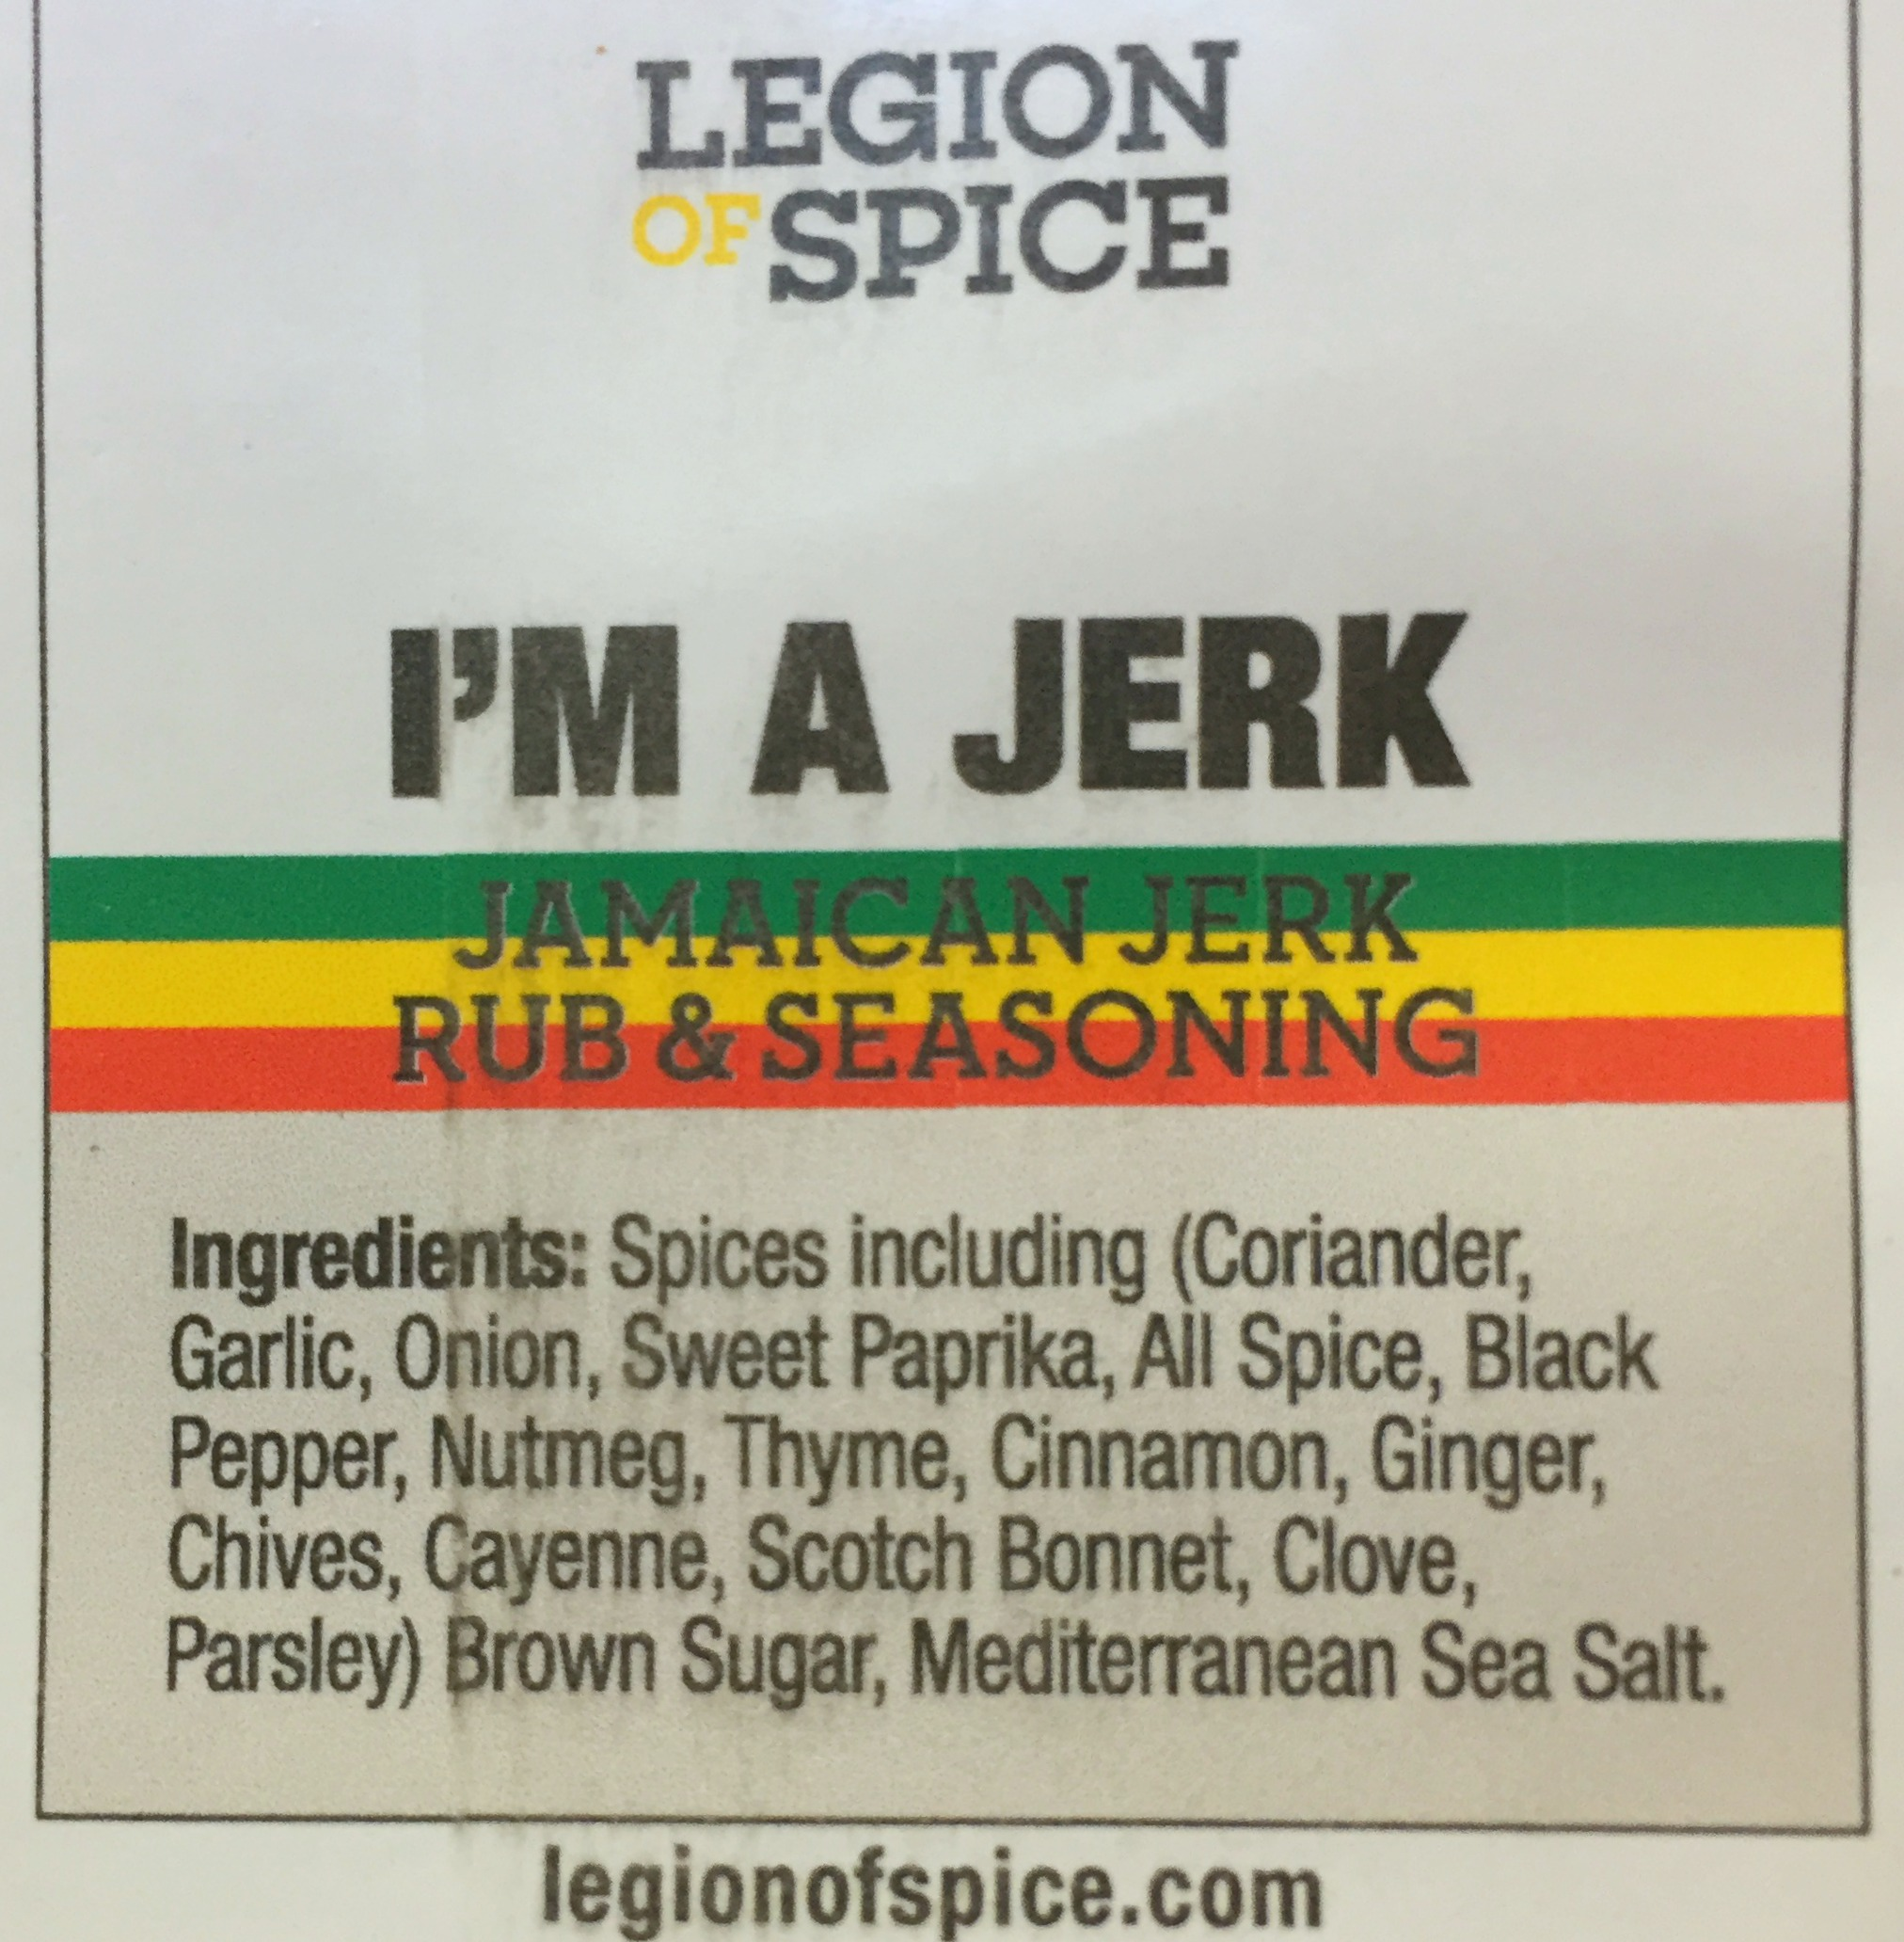 Legion of Spice Jerk Chicken